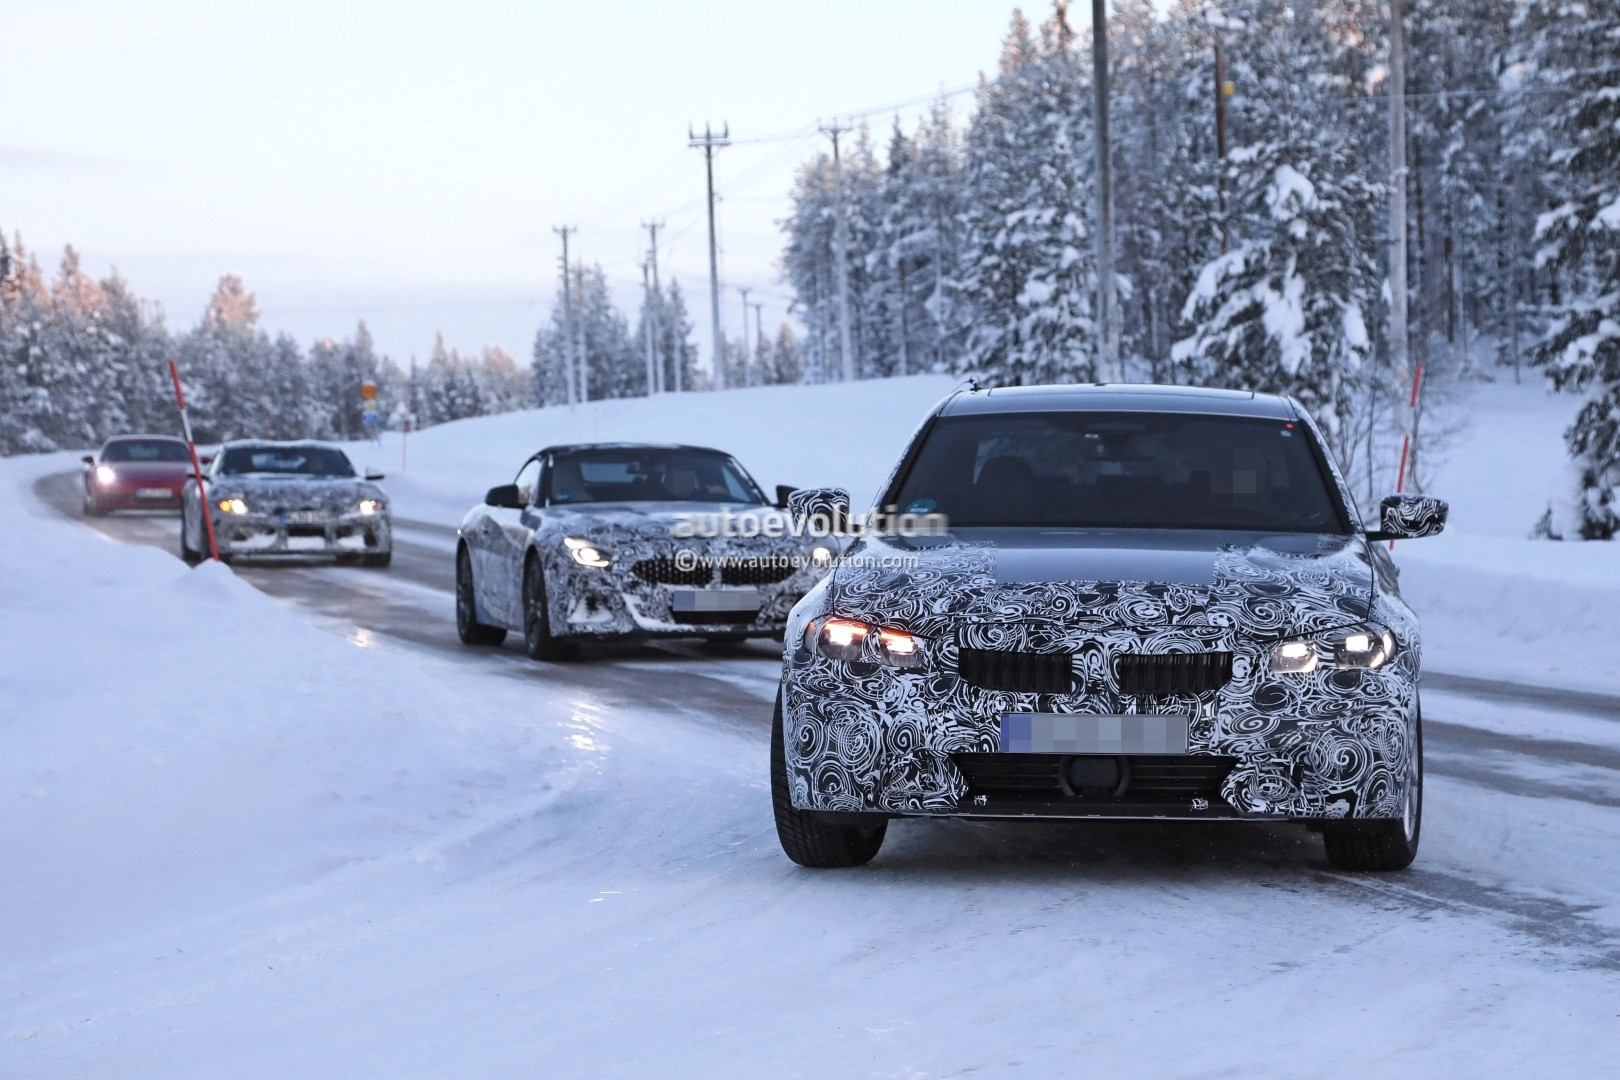 Spyshots 2019 Bmw 3 Series Shows Production Elements Almost Ready To Debut Autoevolution